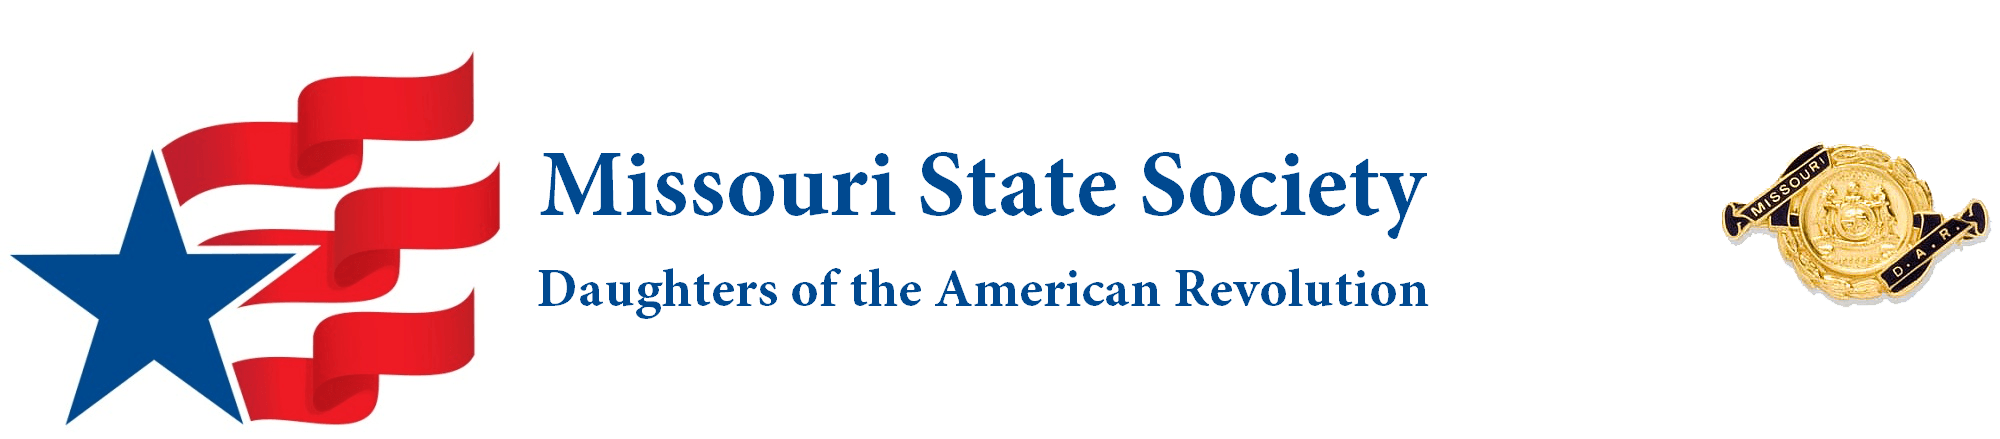 Missouri State Society Daughters of the American Revolution